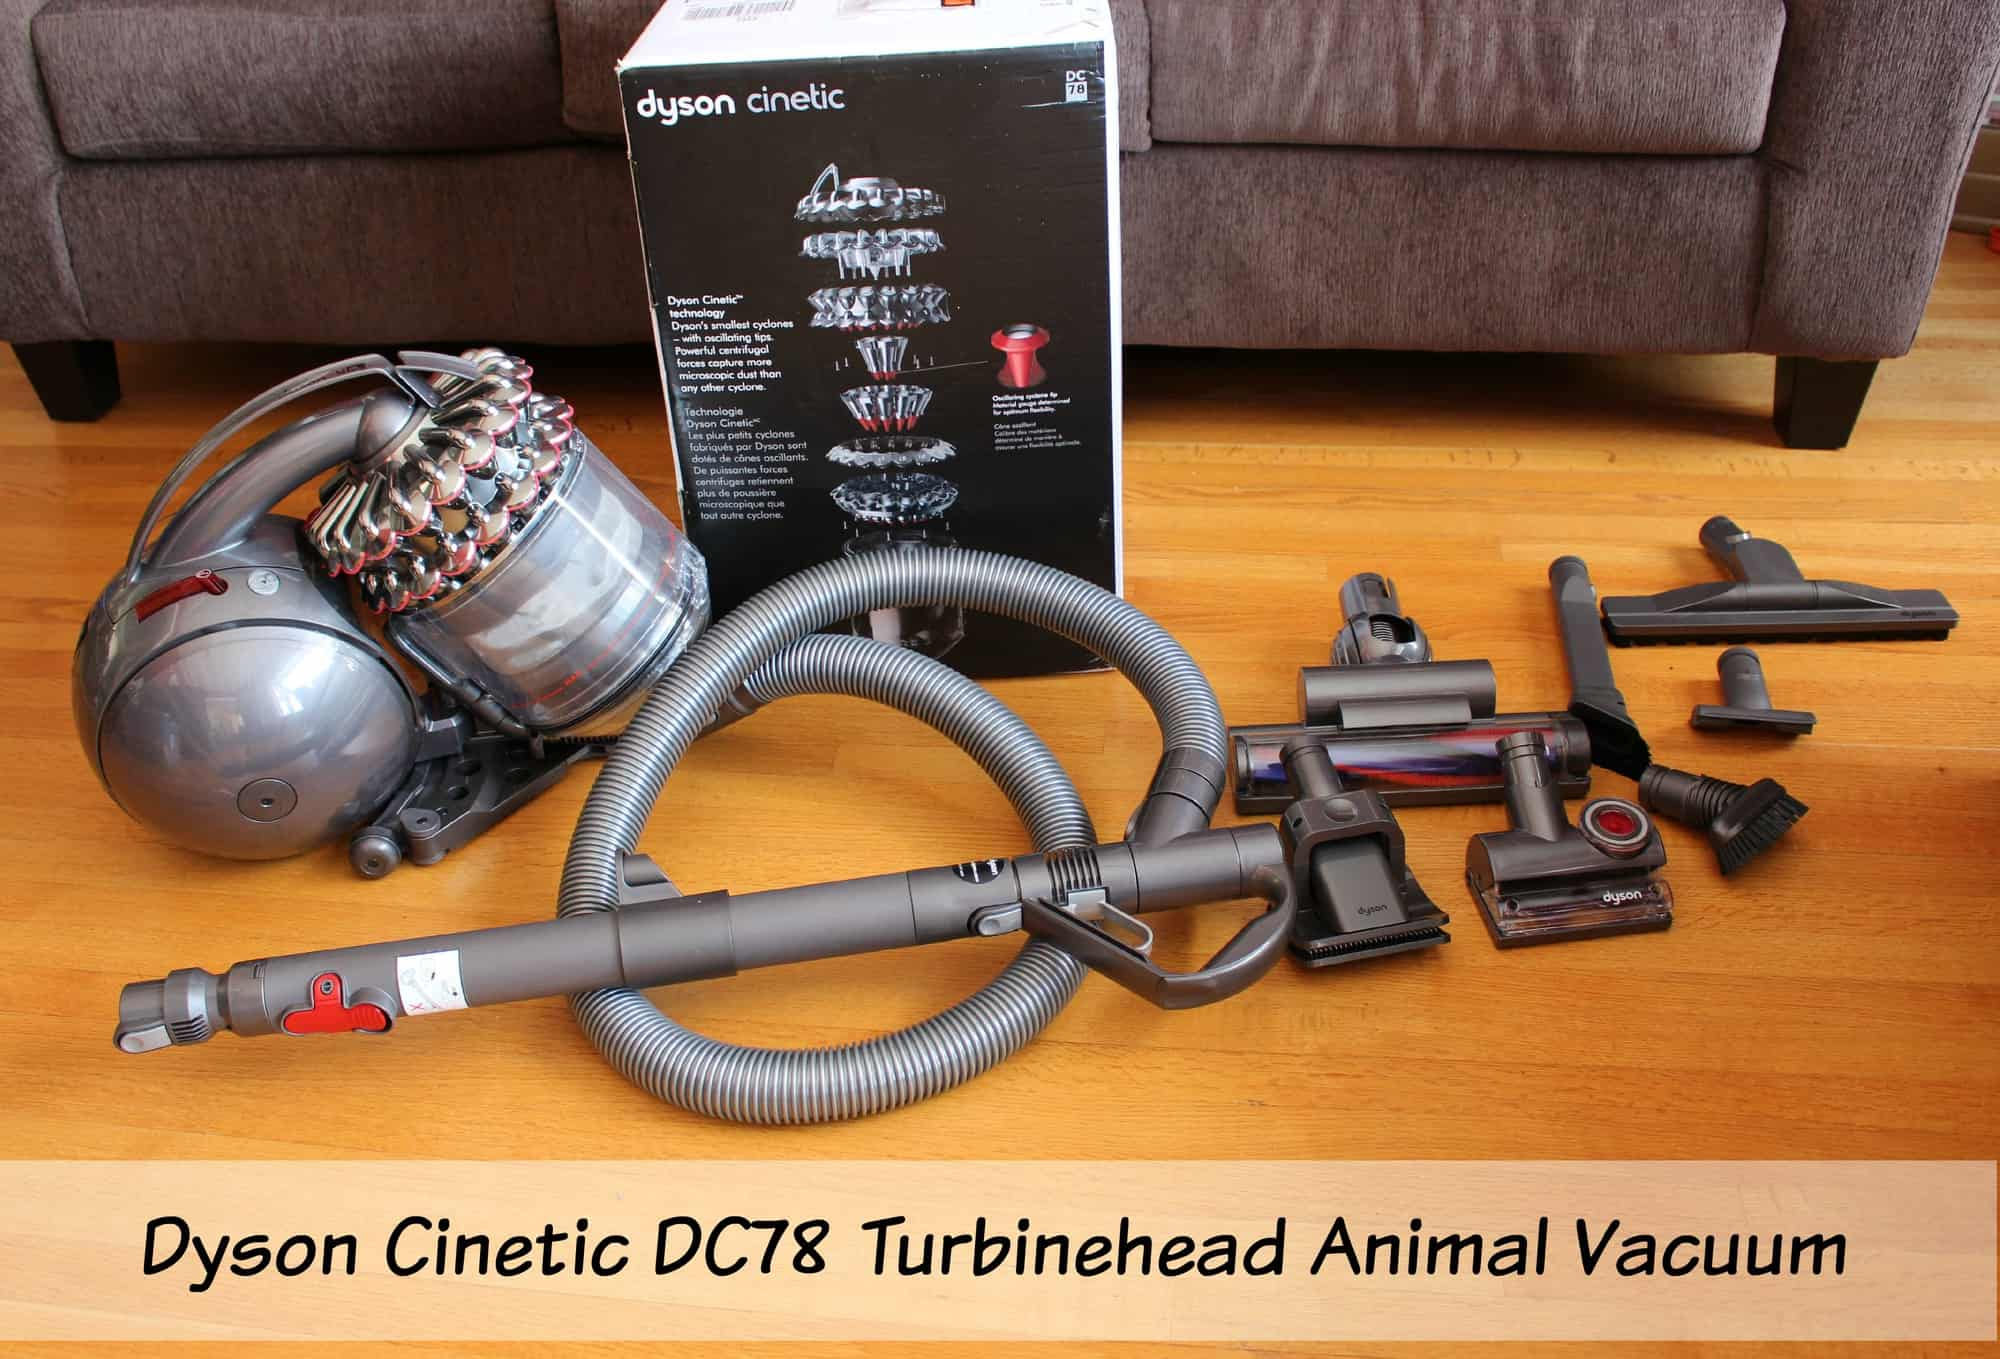 Get Rid of Hair Around Your House – Dyson Cinetic DC78 Turbinehead Animal Vacuum Review